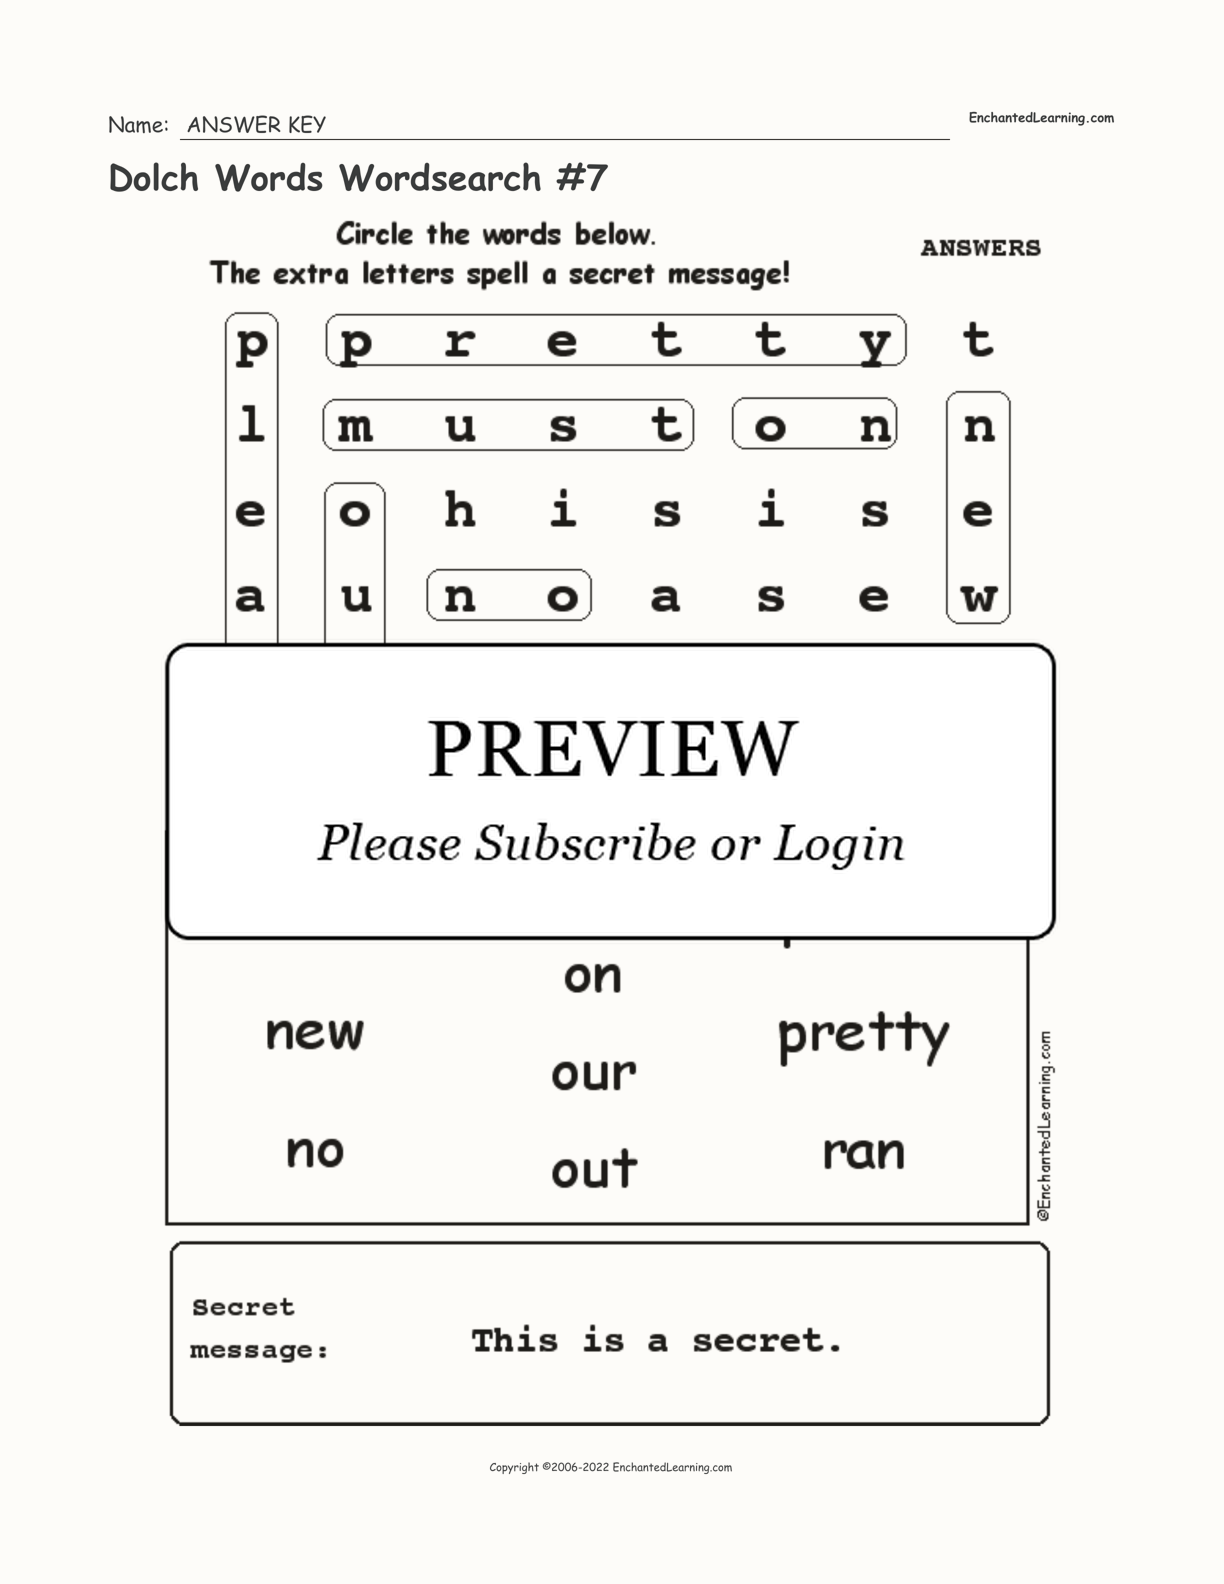 Dolch Words Wordsearch #7 interactive worksheet page 2